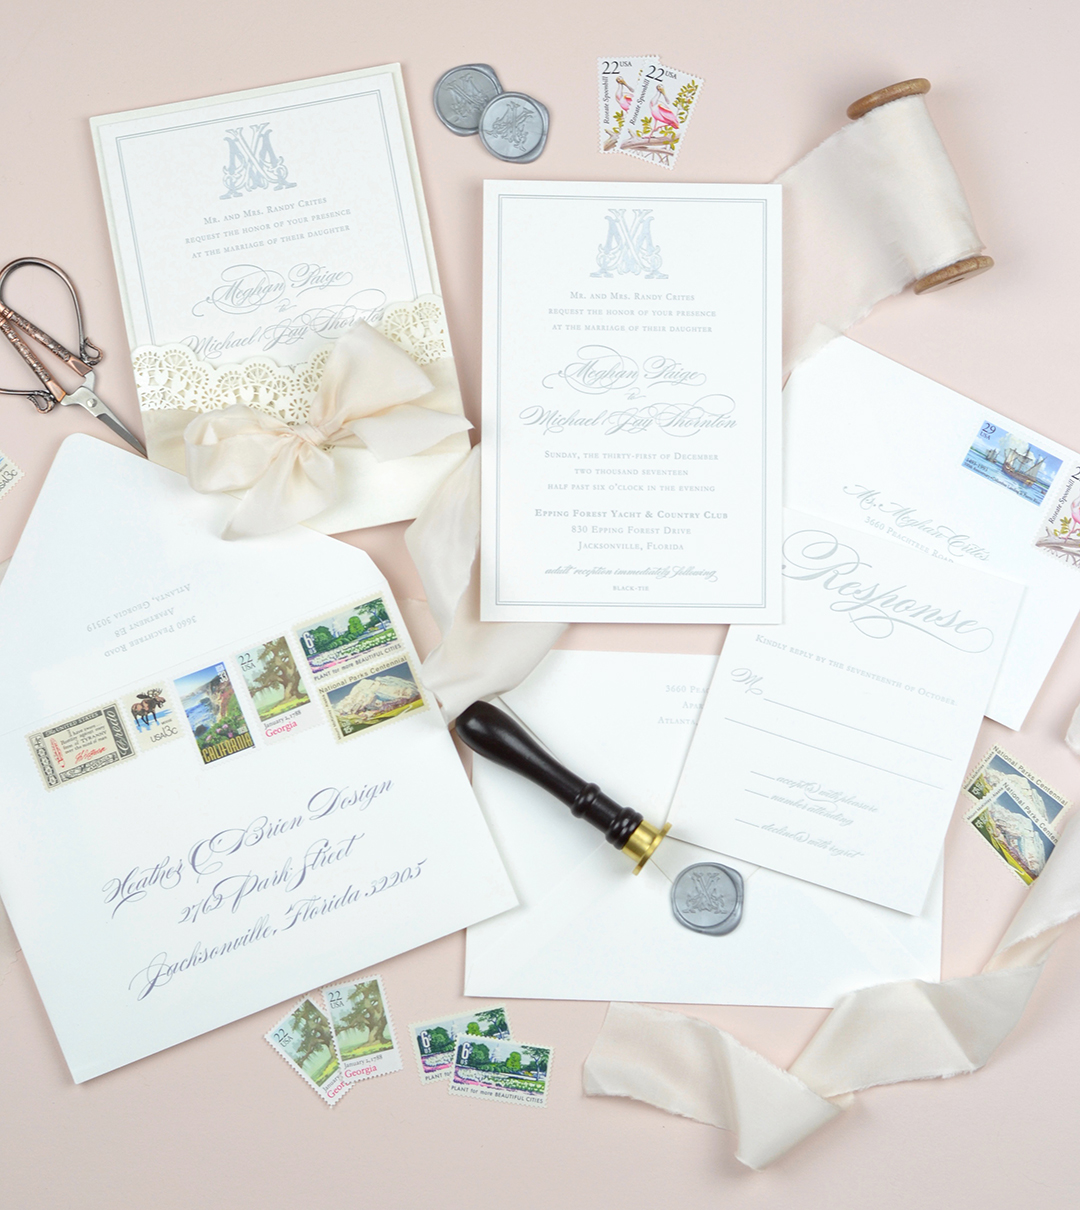 Heather O'Brien Design Wedding Invitations - Fall 2018 Creative Founders Conference Speaker